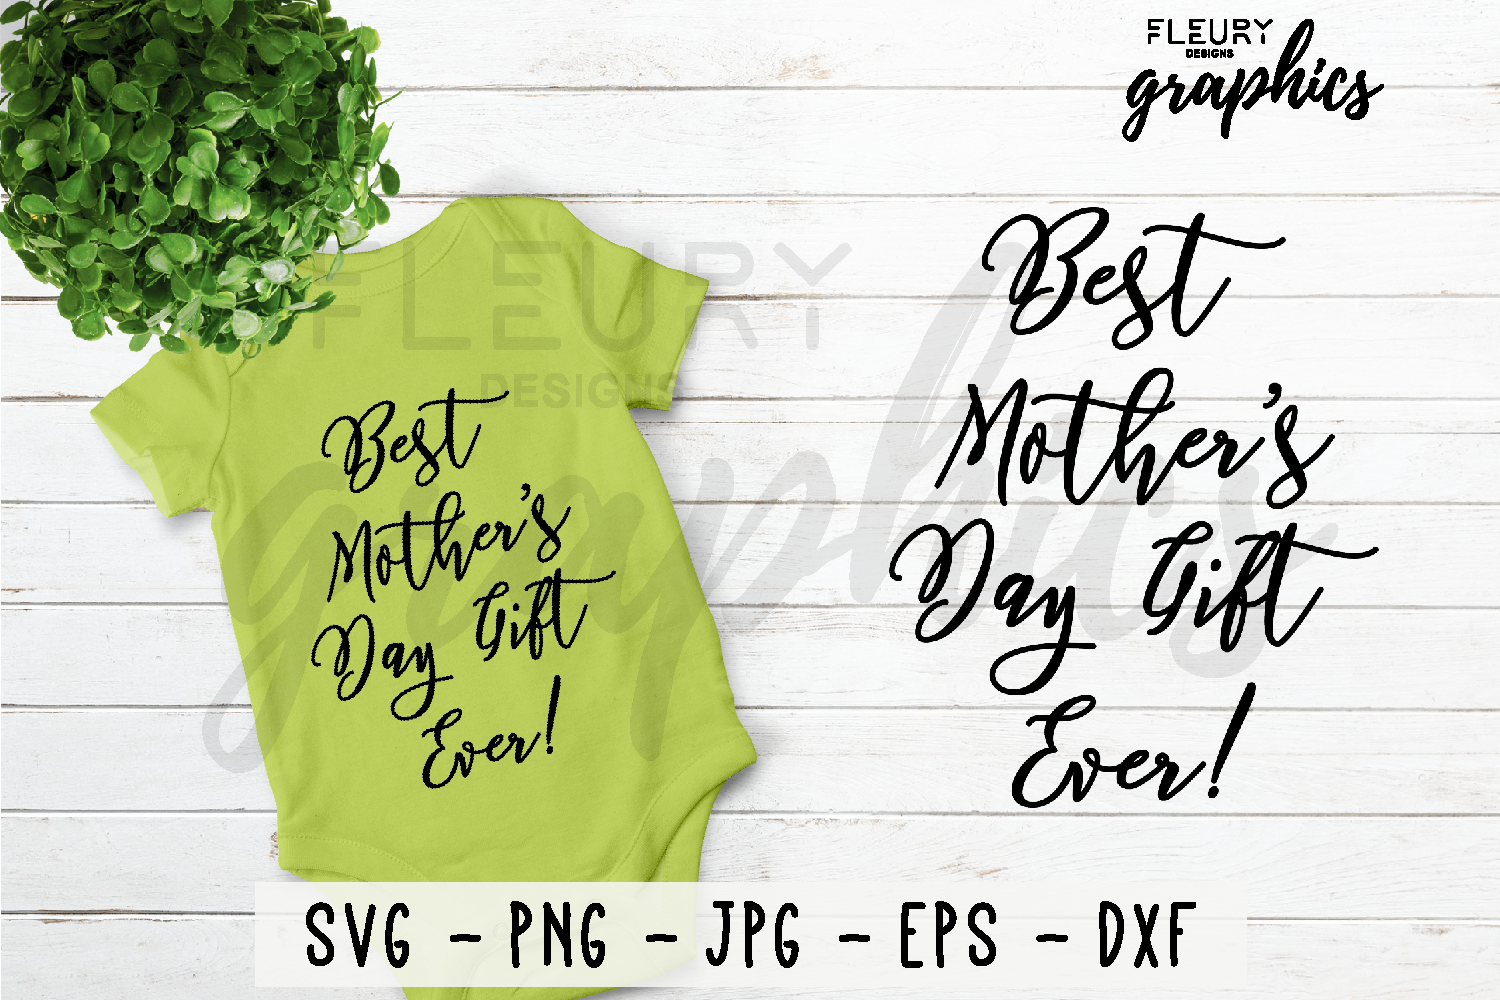 Best Mothers Day Gift Ever SVG Cut file PNG EPS DXF JPG example image 1